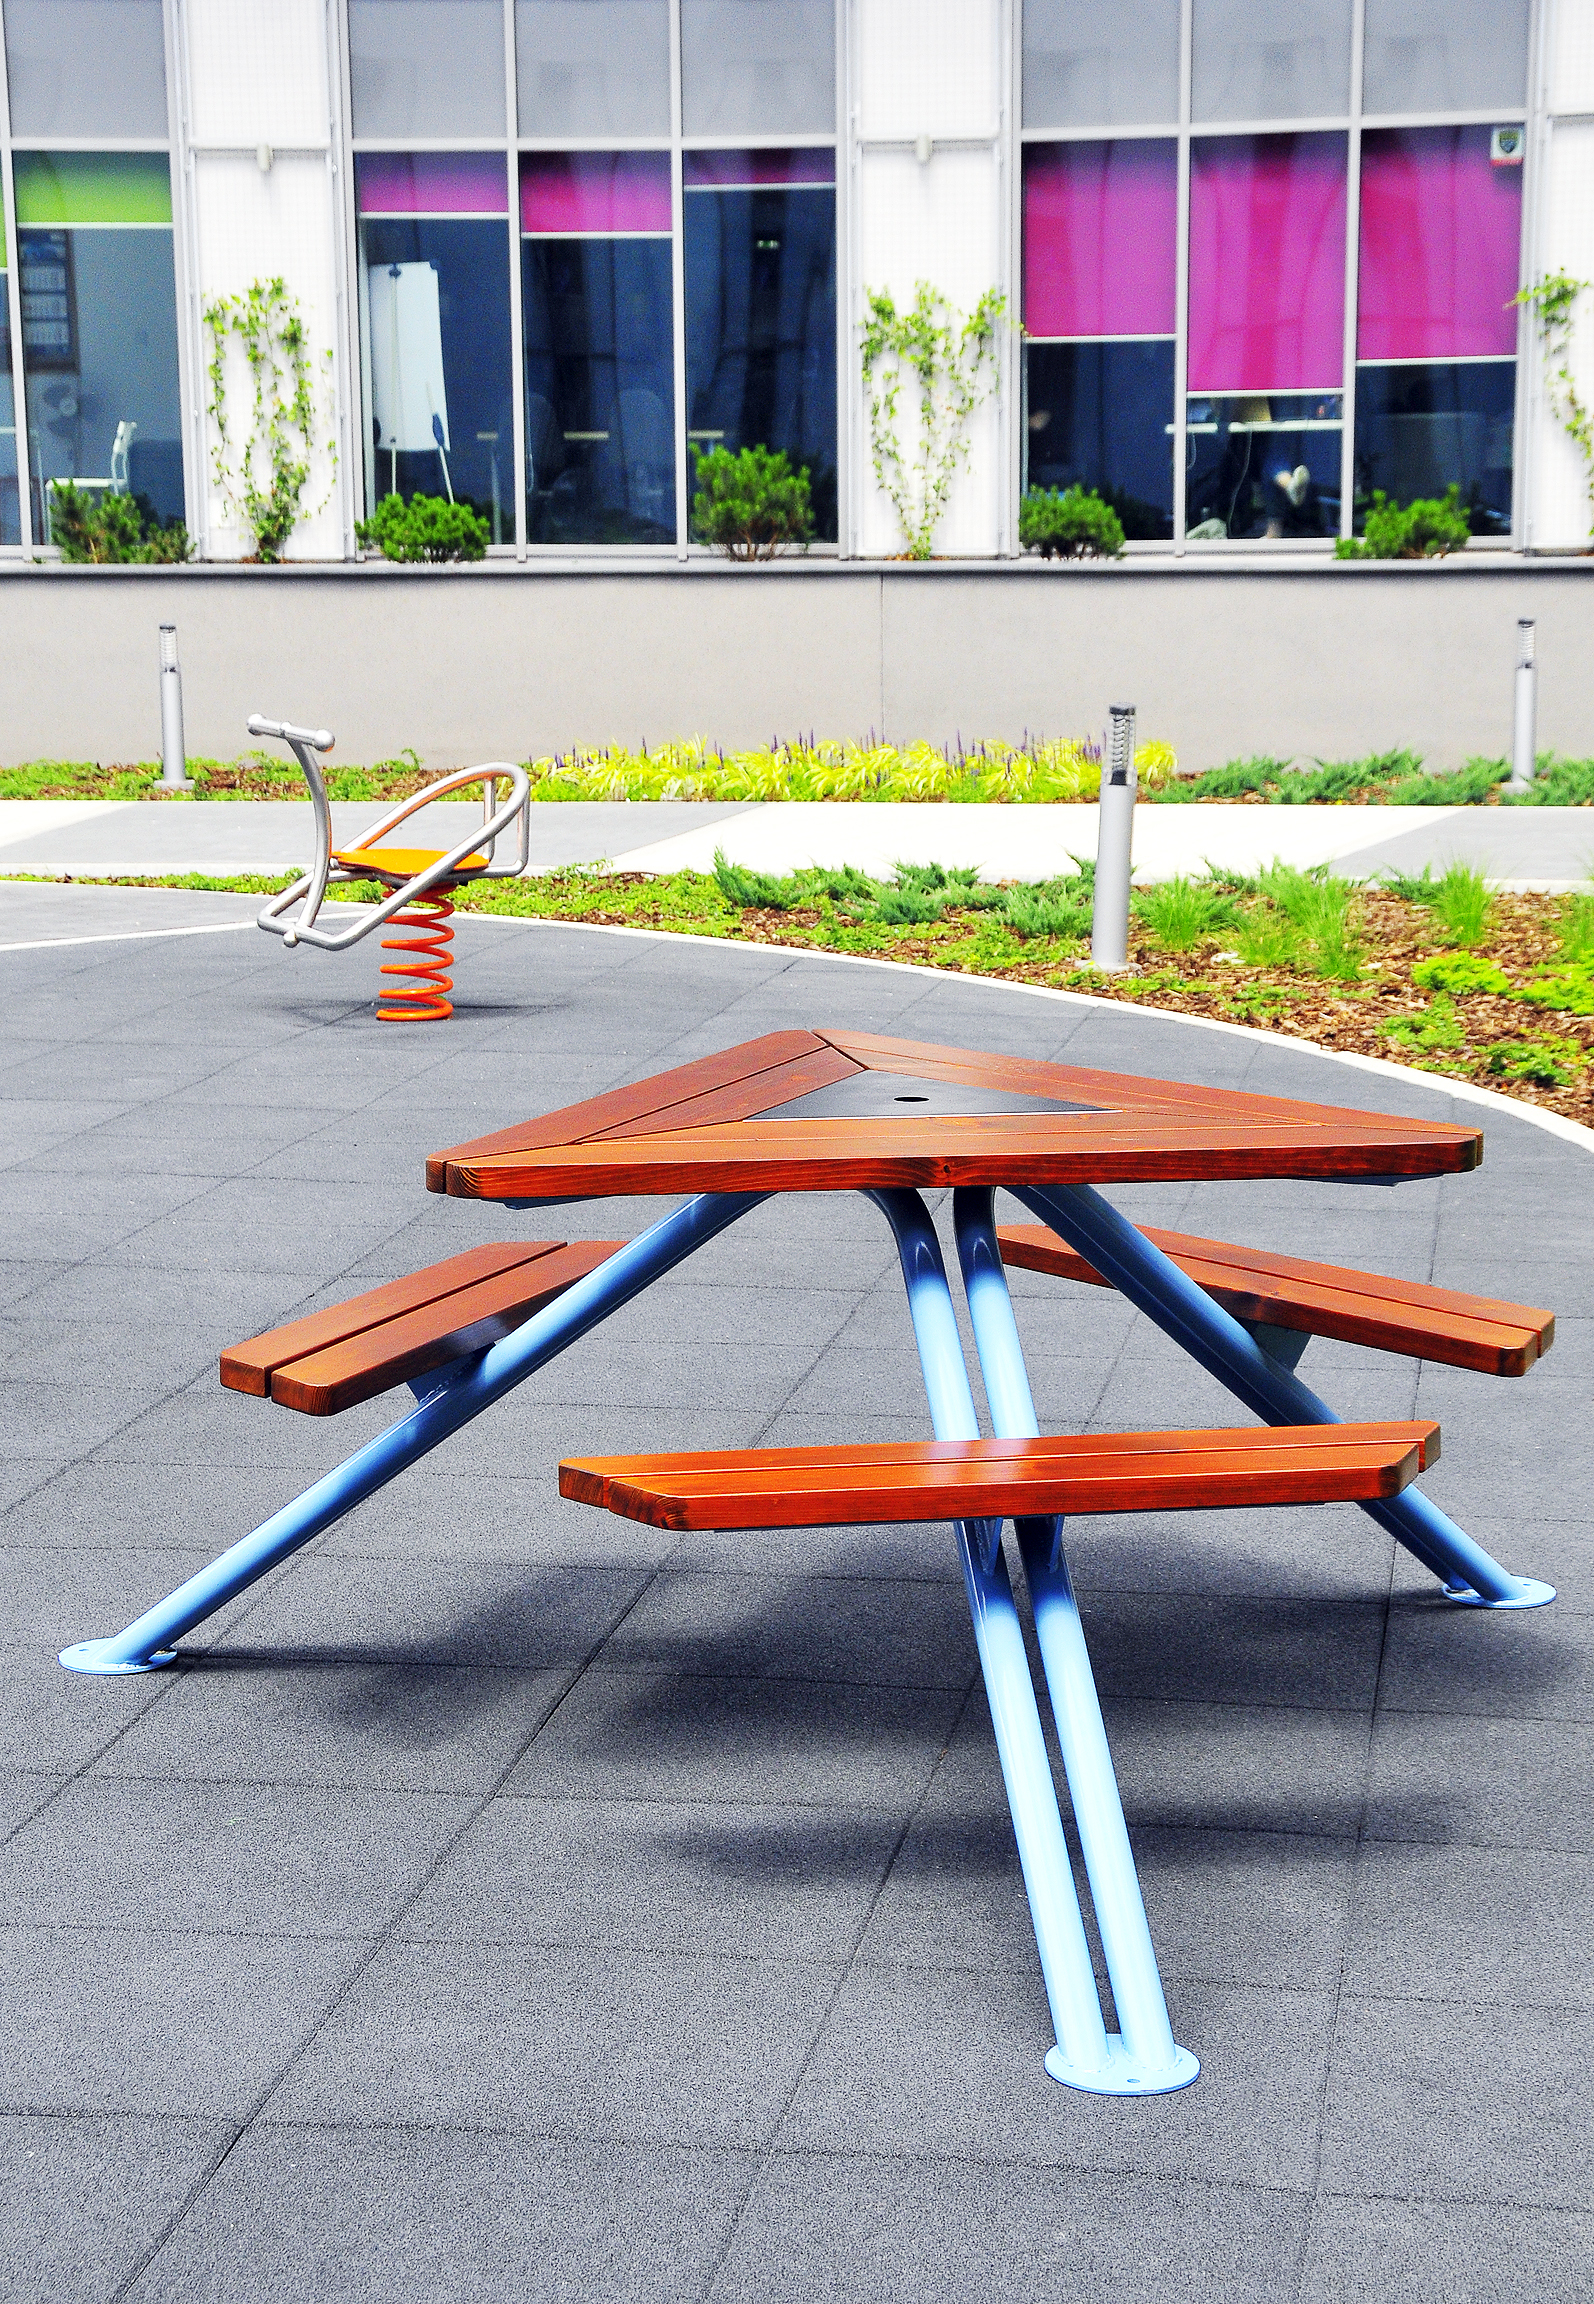 picnic office design. Picnic Table At The Office Building Design T